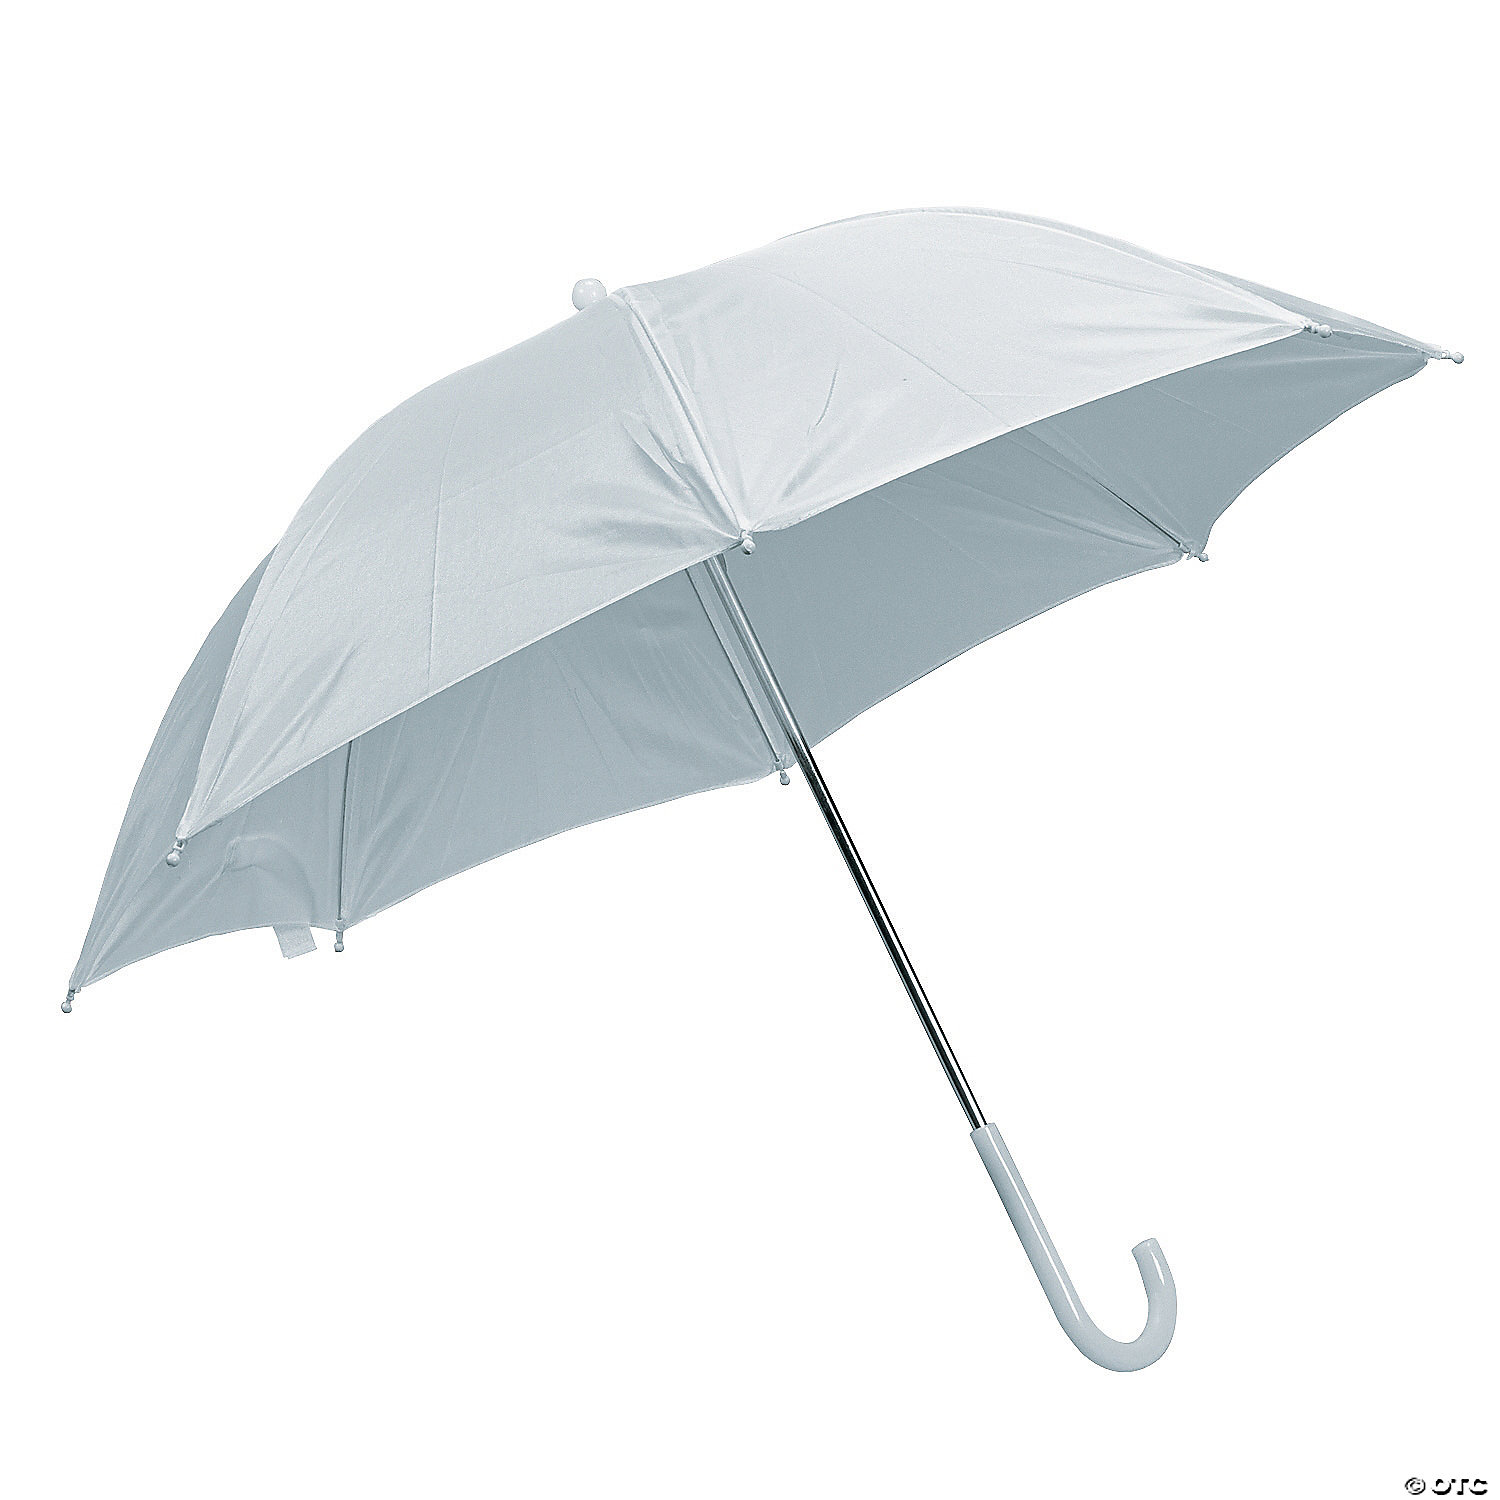 quickview  image of DIY White Umbrellas - 24 Pc. with sku:13610764